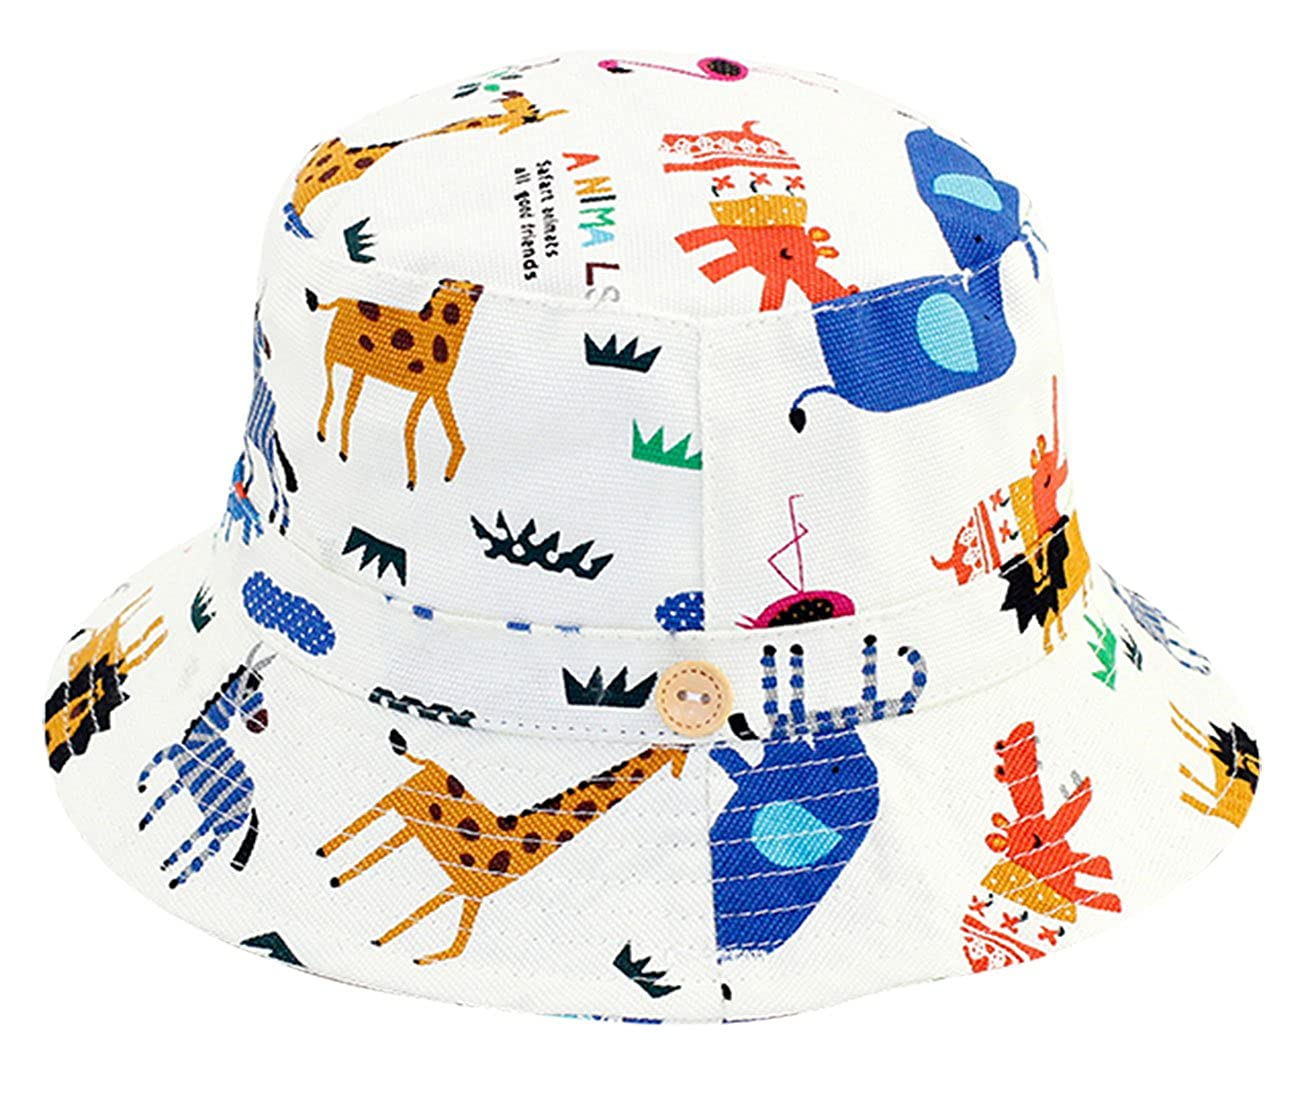 RUHI Toddler Sun Protection Hat Soft Cotton Bucket with Chin Strap Packable  Cap  Amazon.ca  Clothing   Accessories 5cd7c6ff102d